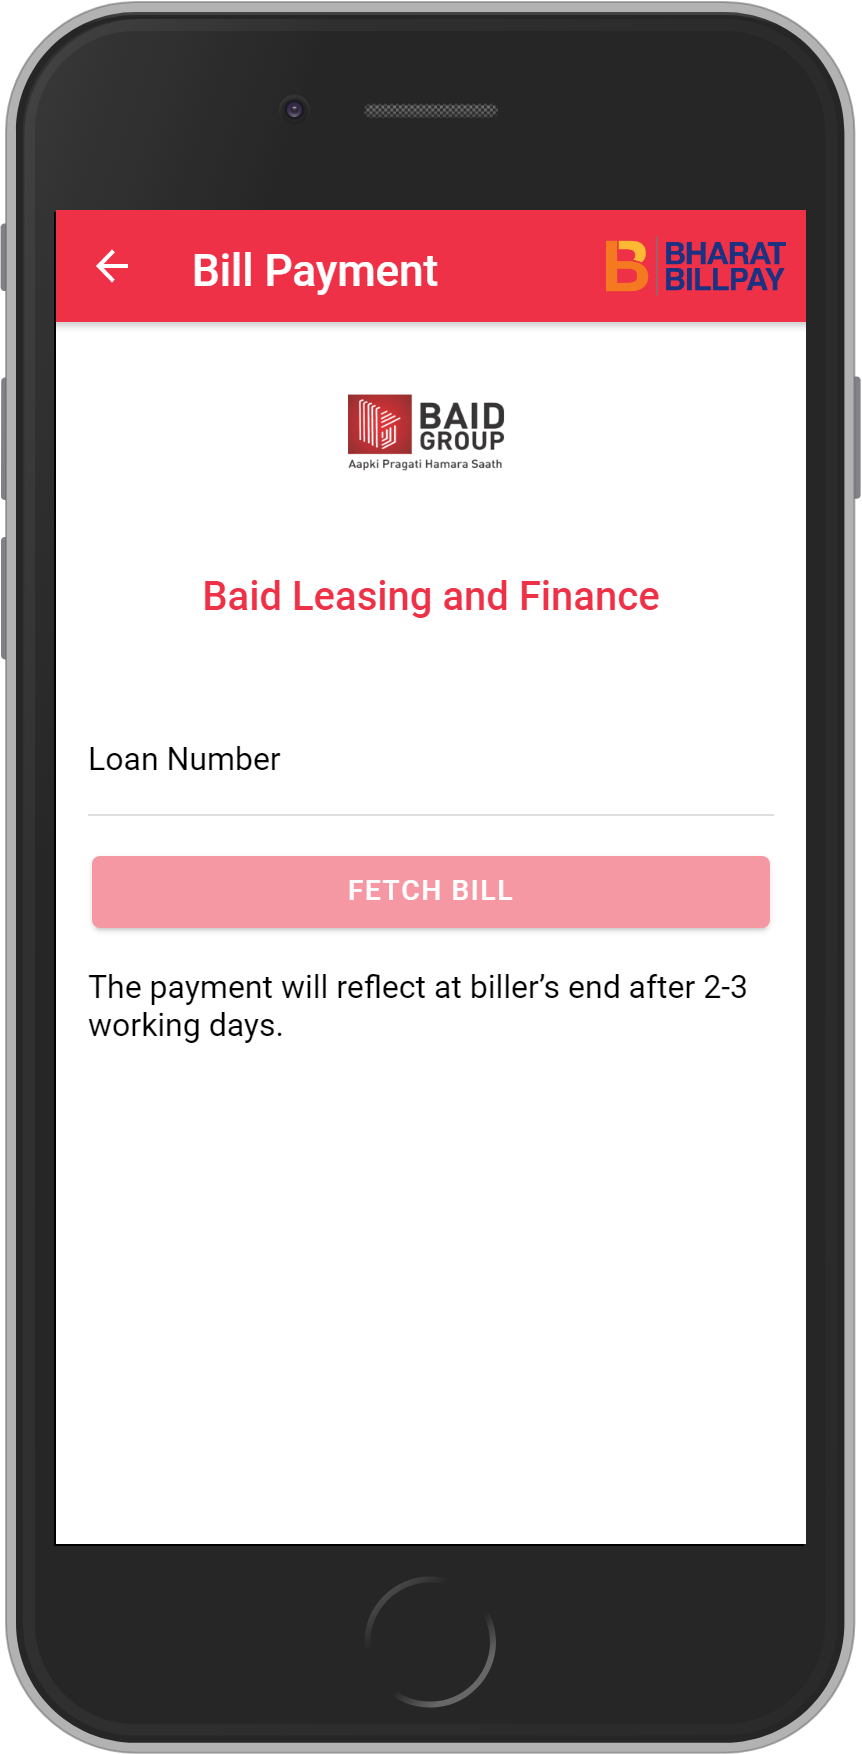 Get UNLIMITED <b>0.1%</b> CASHBACK on Baid Leasing and Finance Loan Payment.